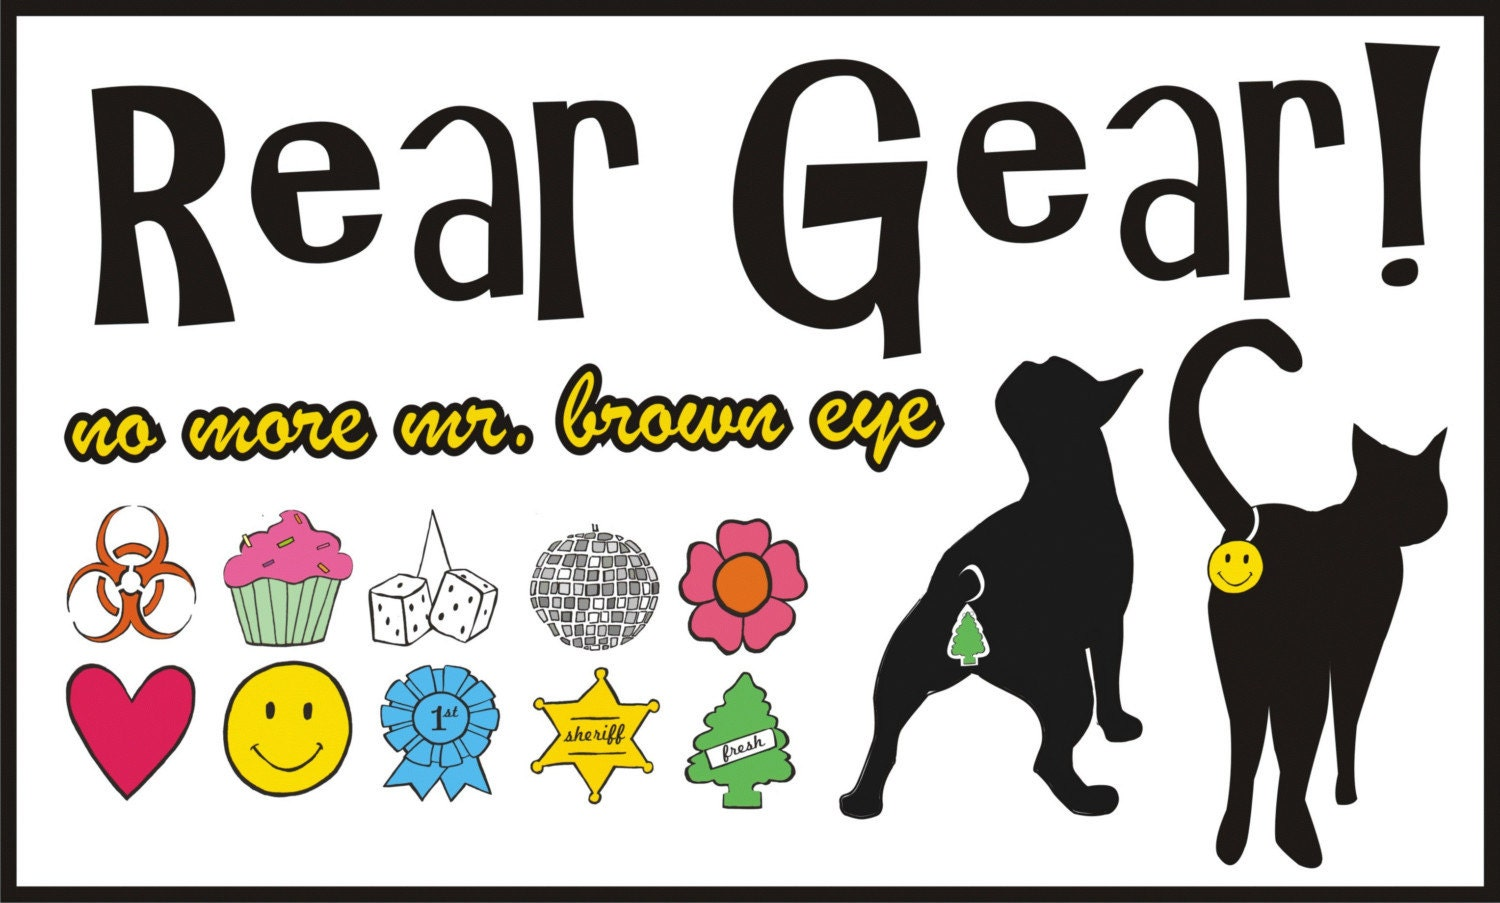 Rear Gear.  Butt Covers for your Cat and Dog...